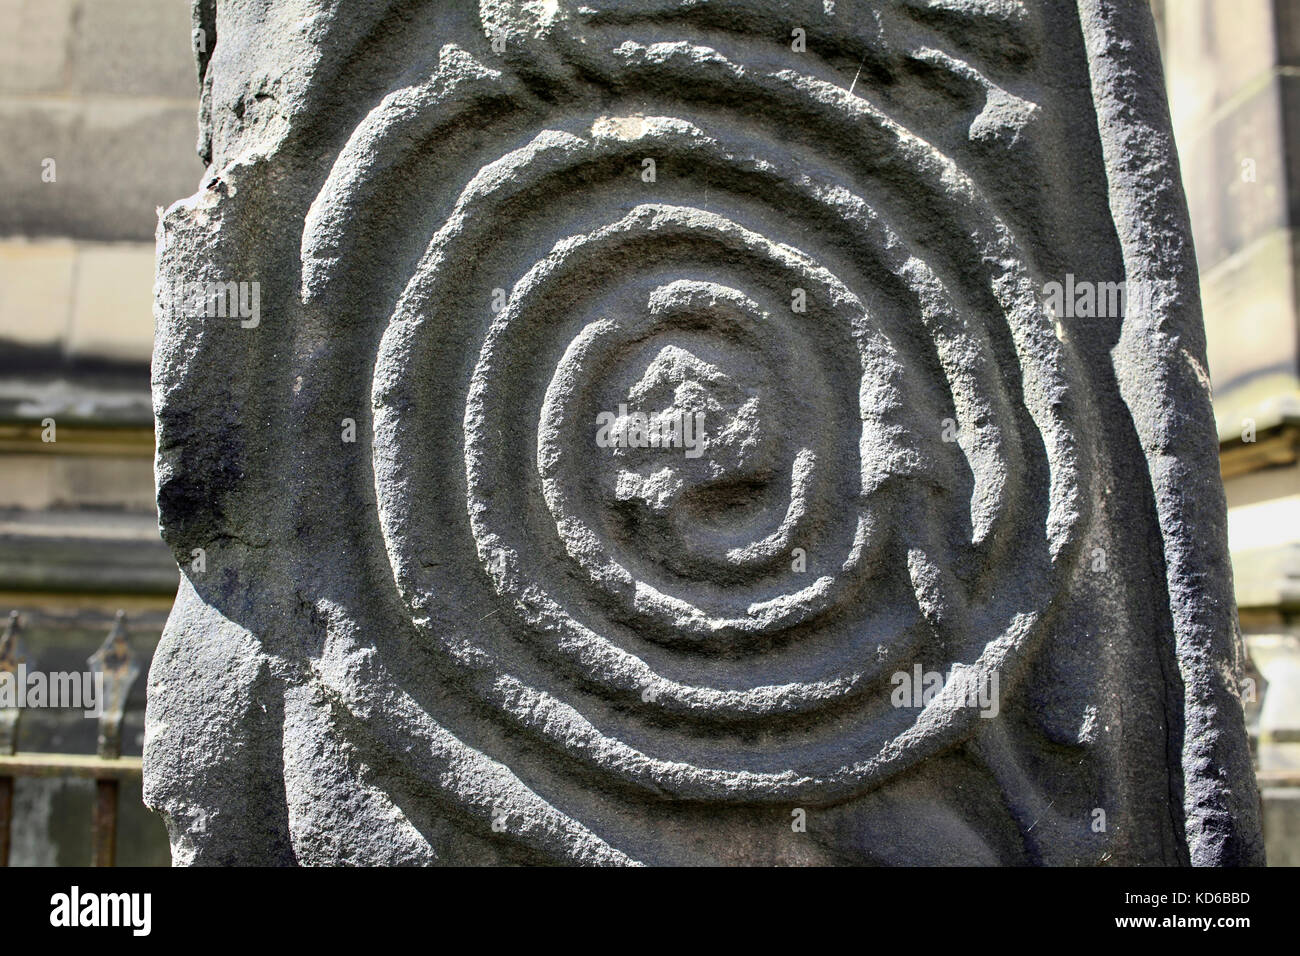 Close up of spiral scrollwork on a medieval cross, All Saints' churchyard, Bakewell, Derbyshire. - Stock Image